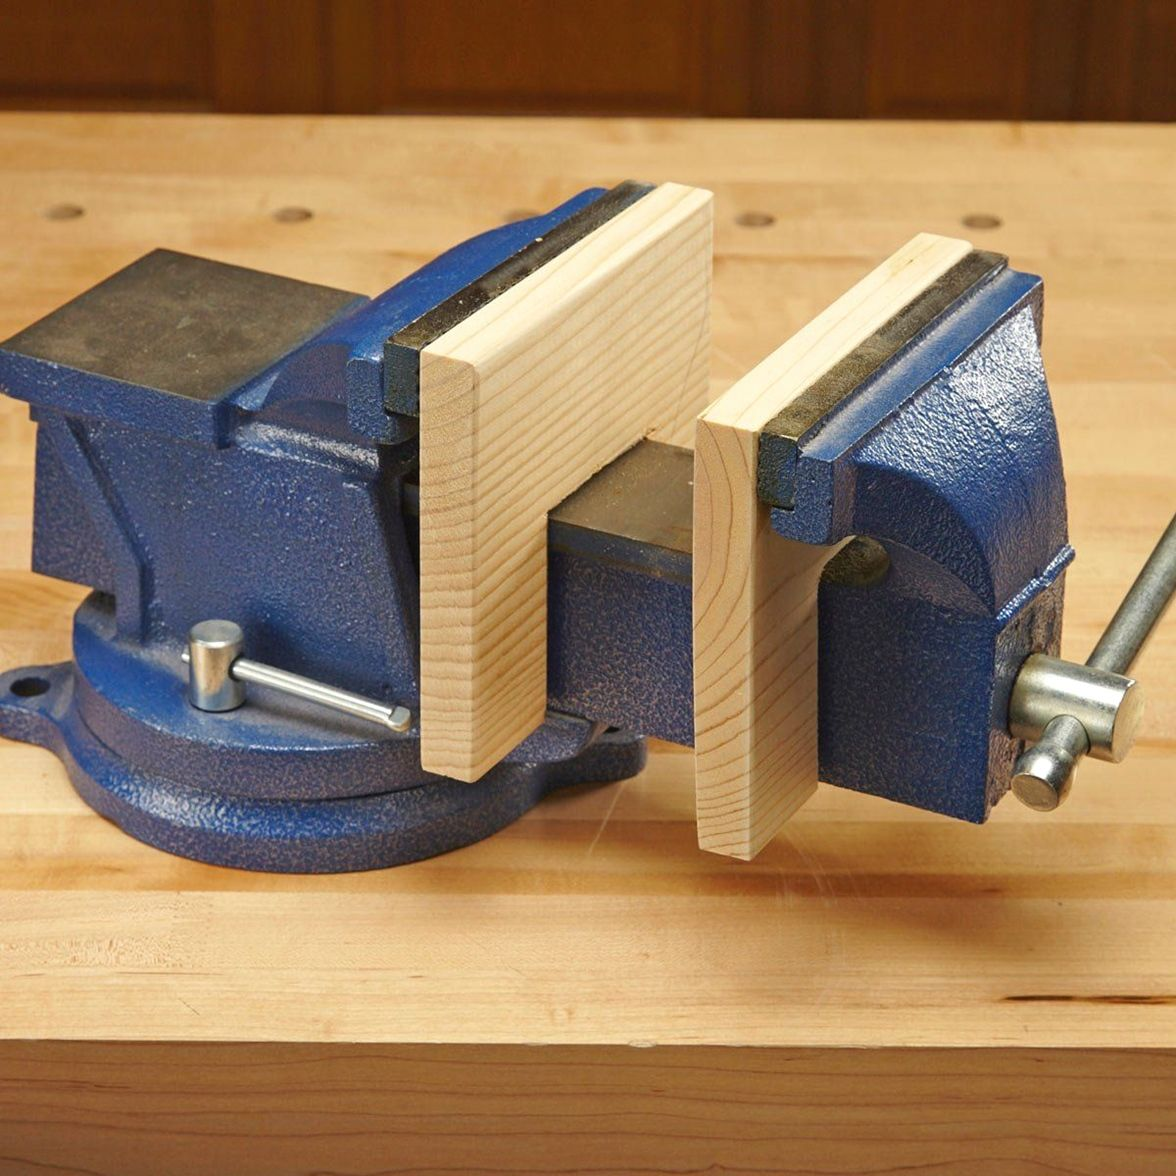 Woodworking Ideas For Home Woodworktips Workshop